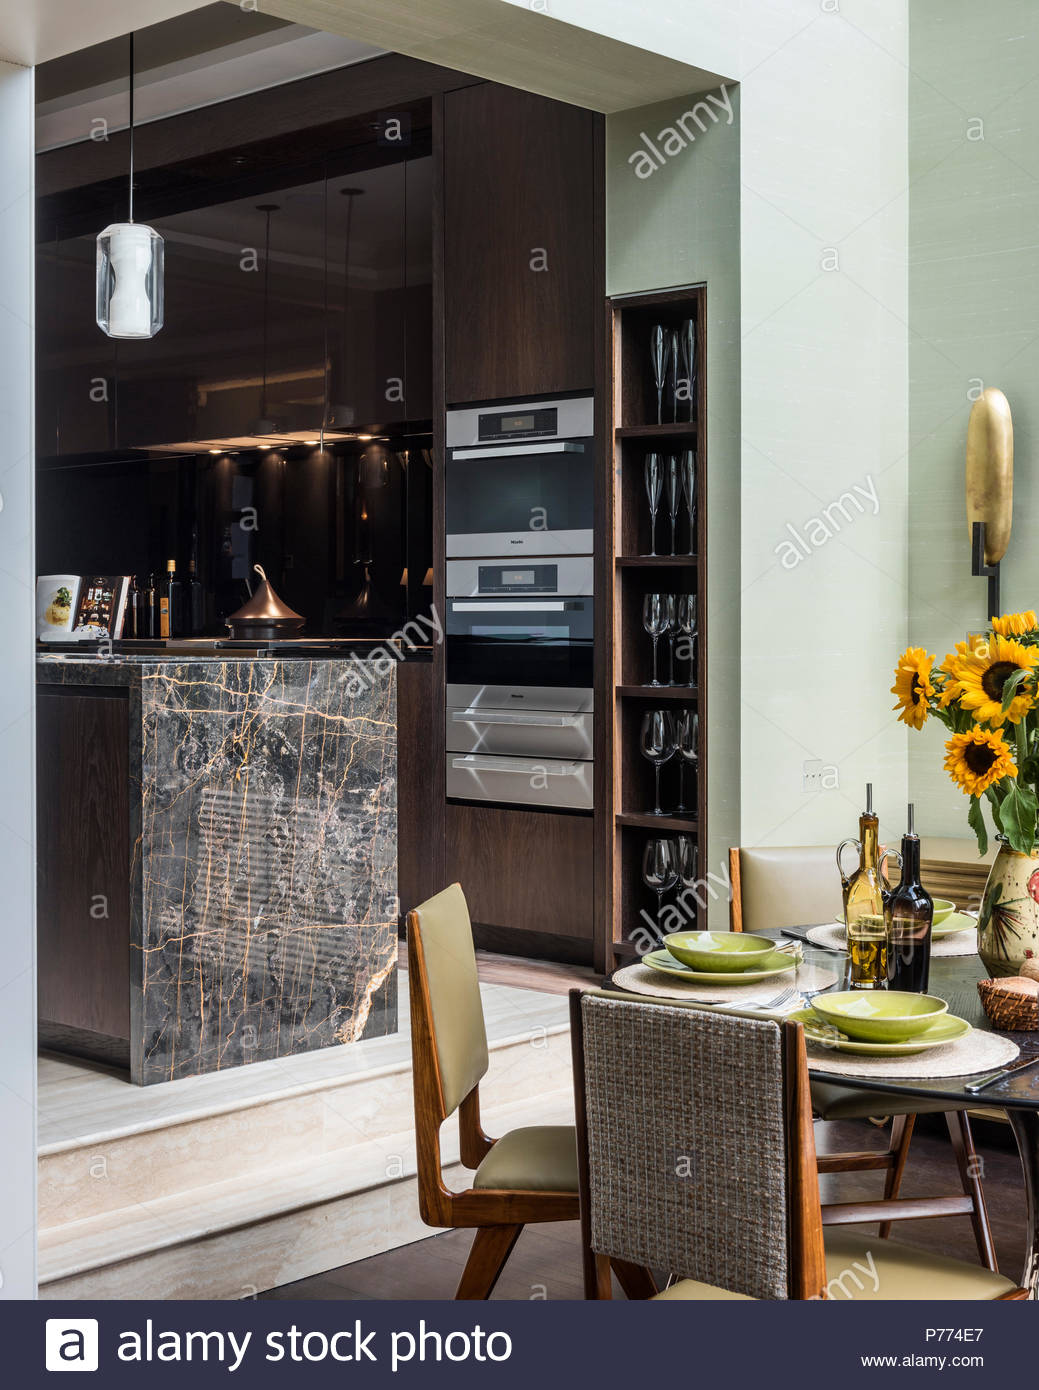 Split level kitchen in brown marble and dining room with glassware storage. - Stock Image